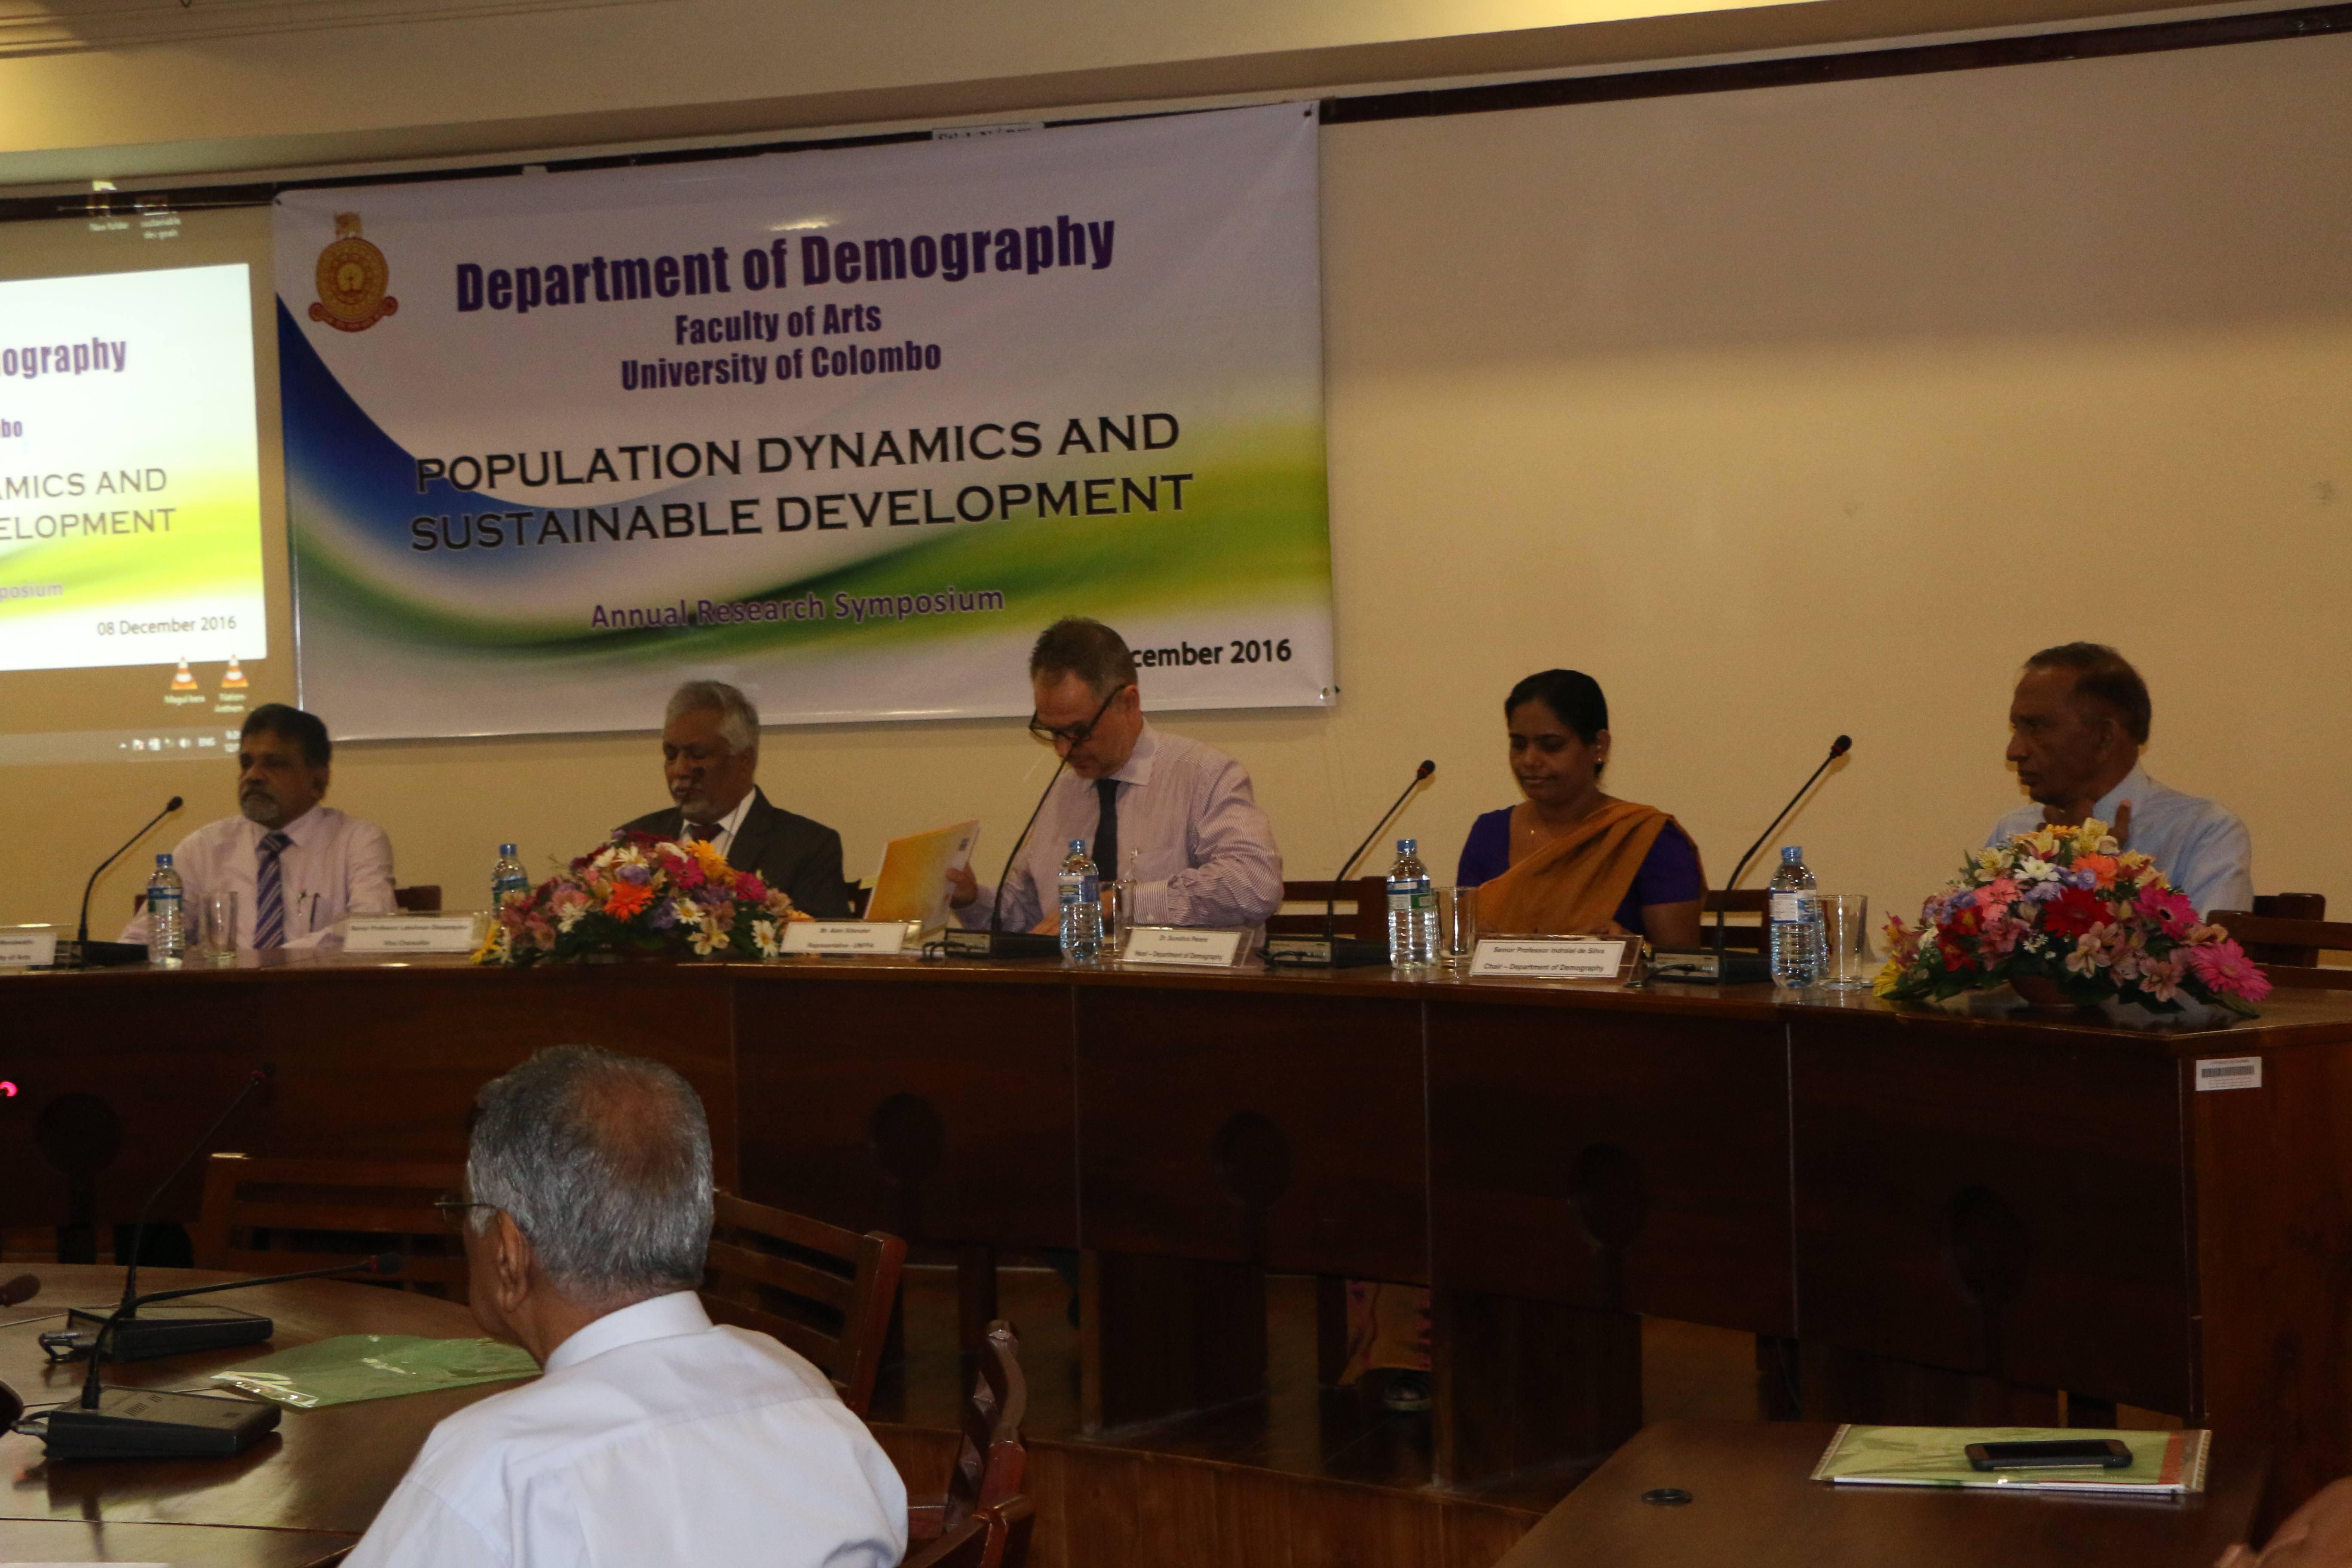 Annual Research Symposium 2016 – Department of Demography